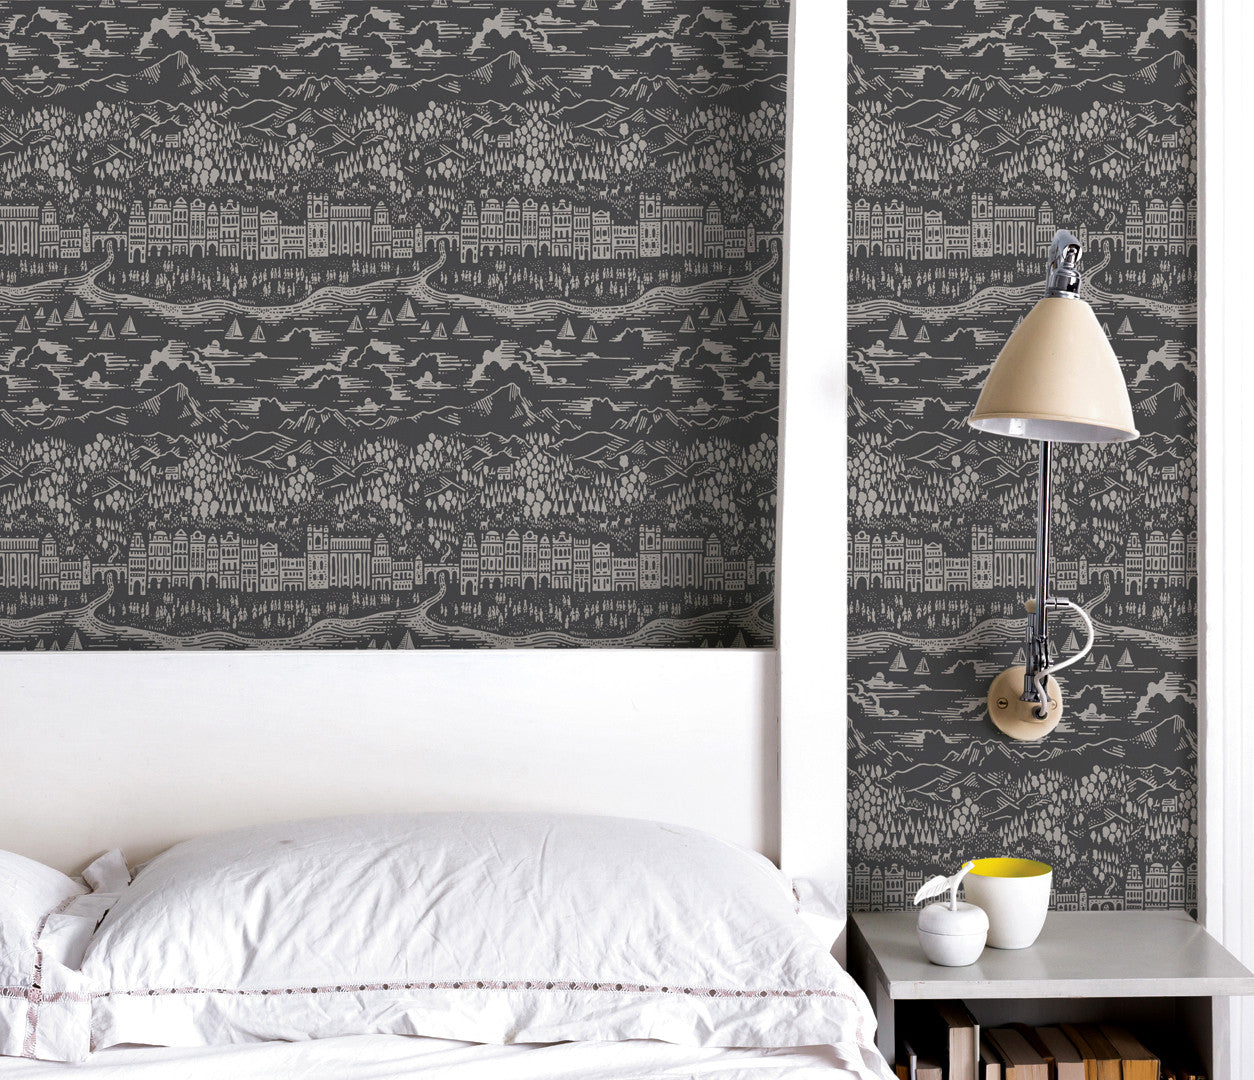 Wall Art where to start: Province Town and County Wallpaper, Dark Grey, Printed in the UK